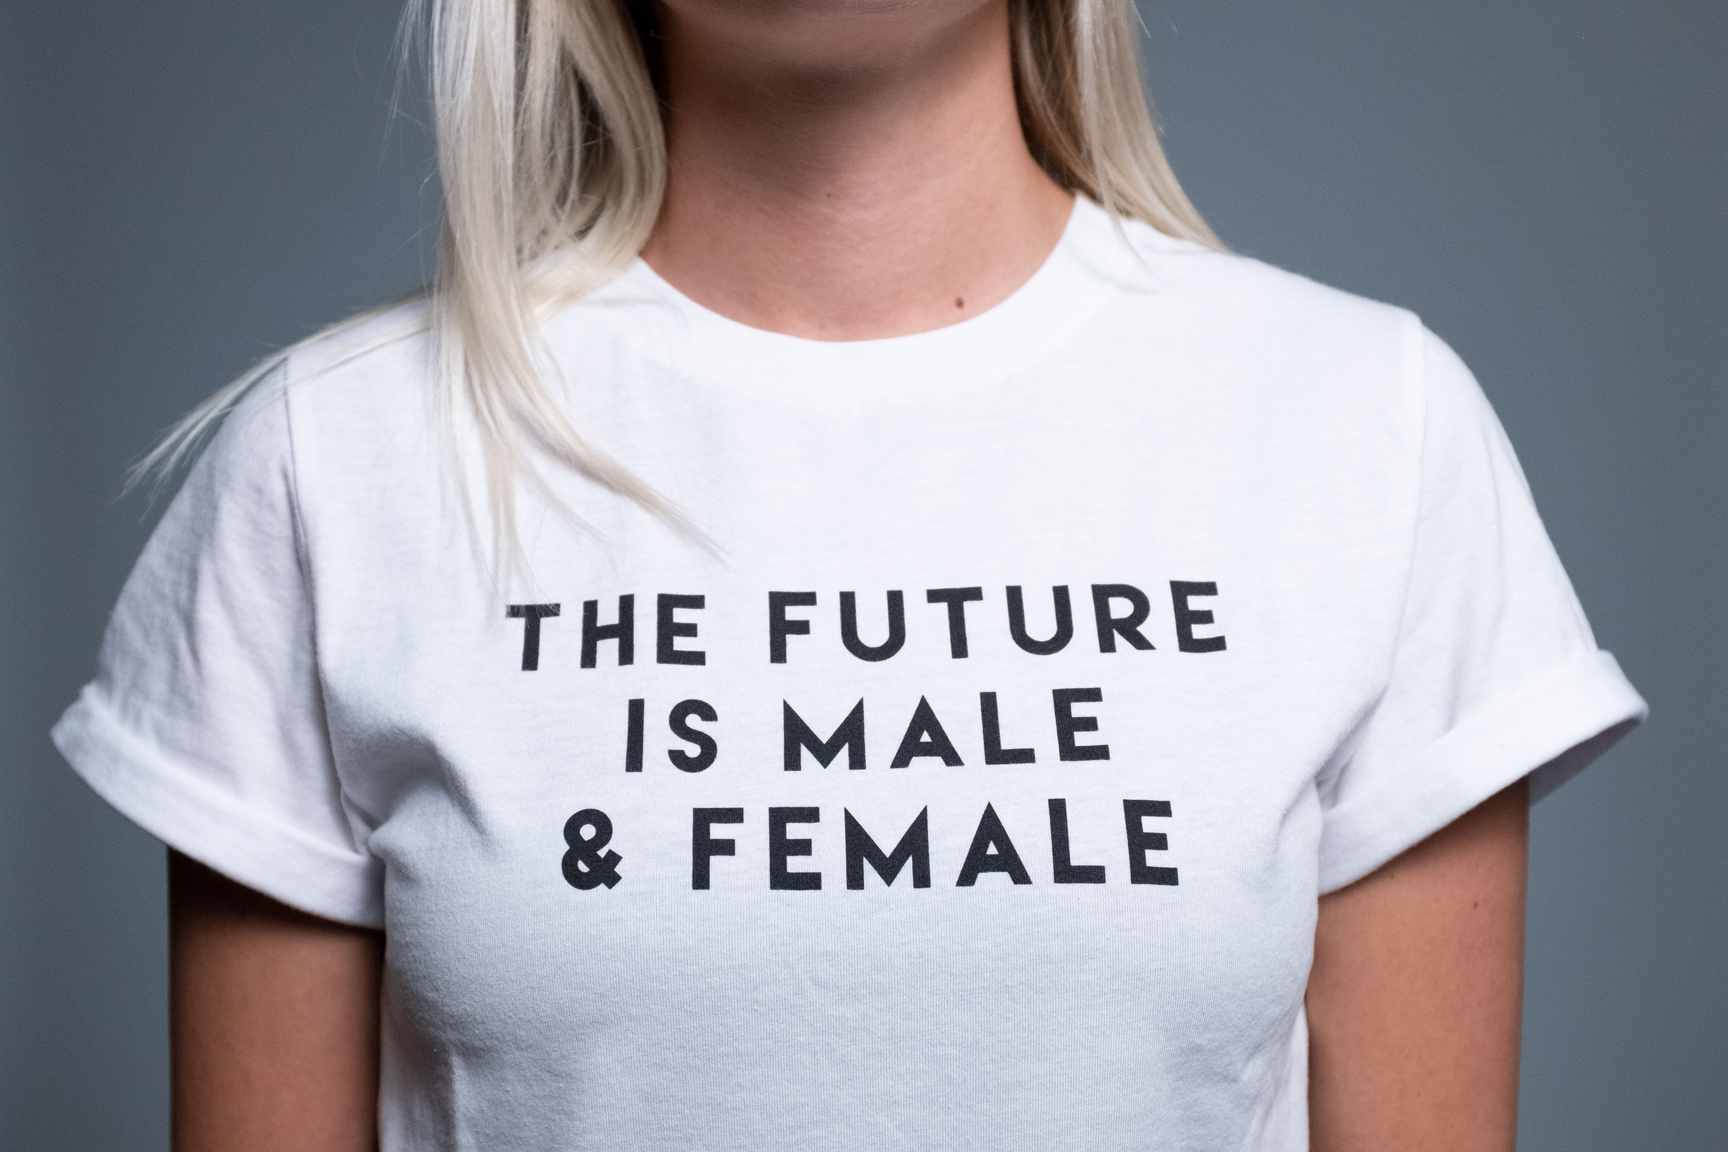 The Future is Male & Female - White